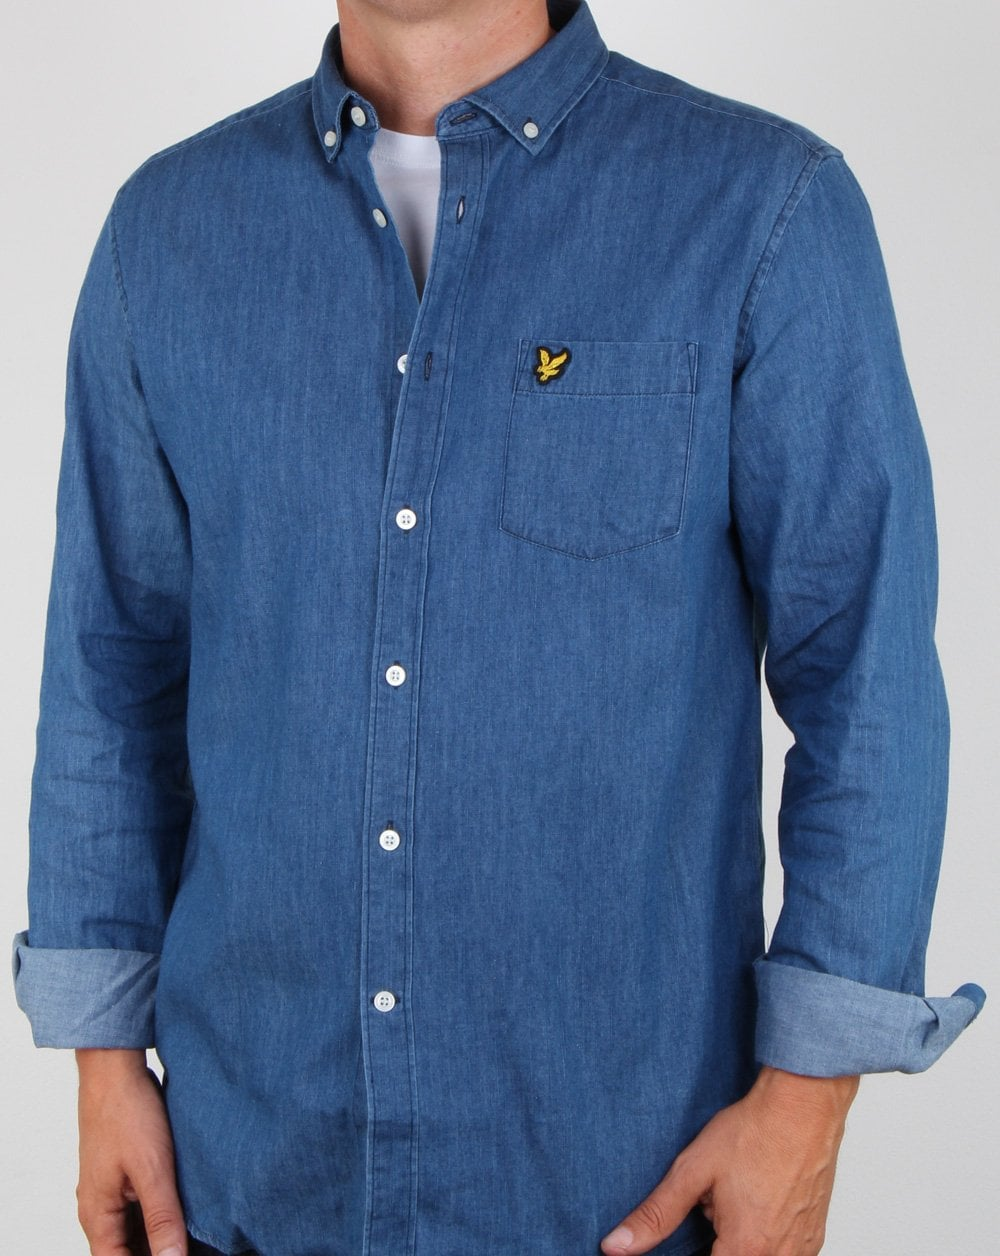 a7645cd024590f Lyle And Scott Denim Shirt Light Indigo Blue | 80s casual classics